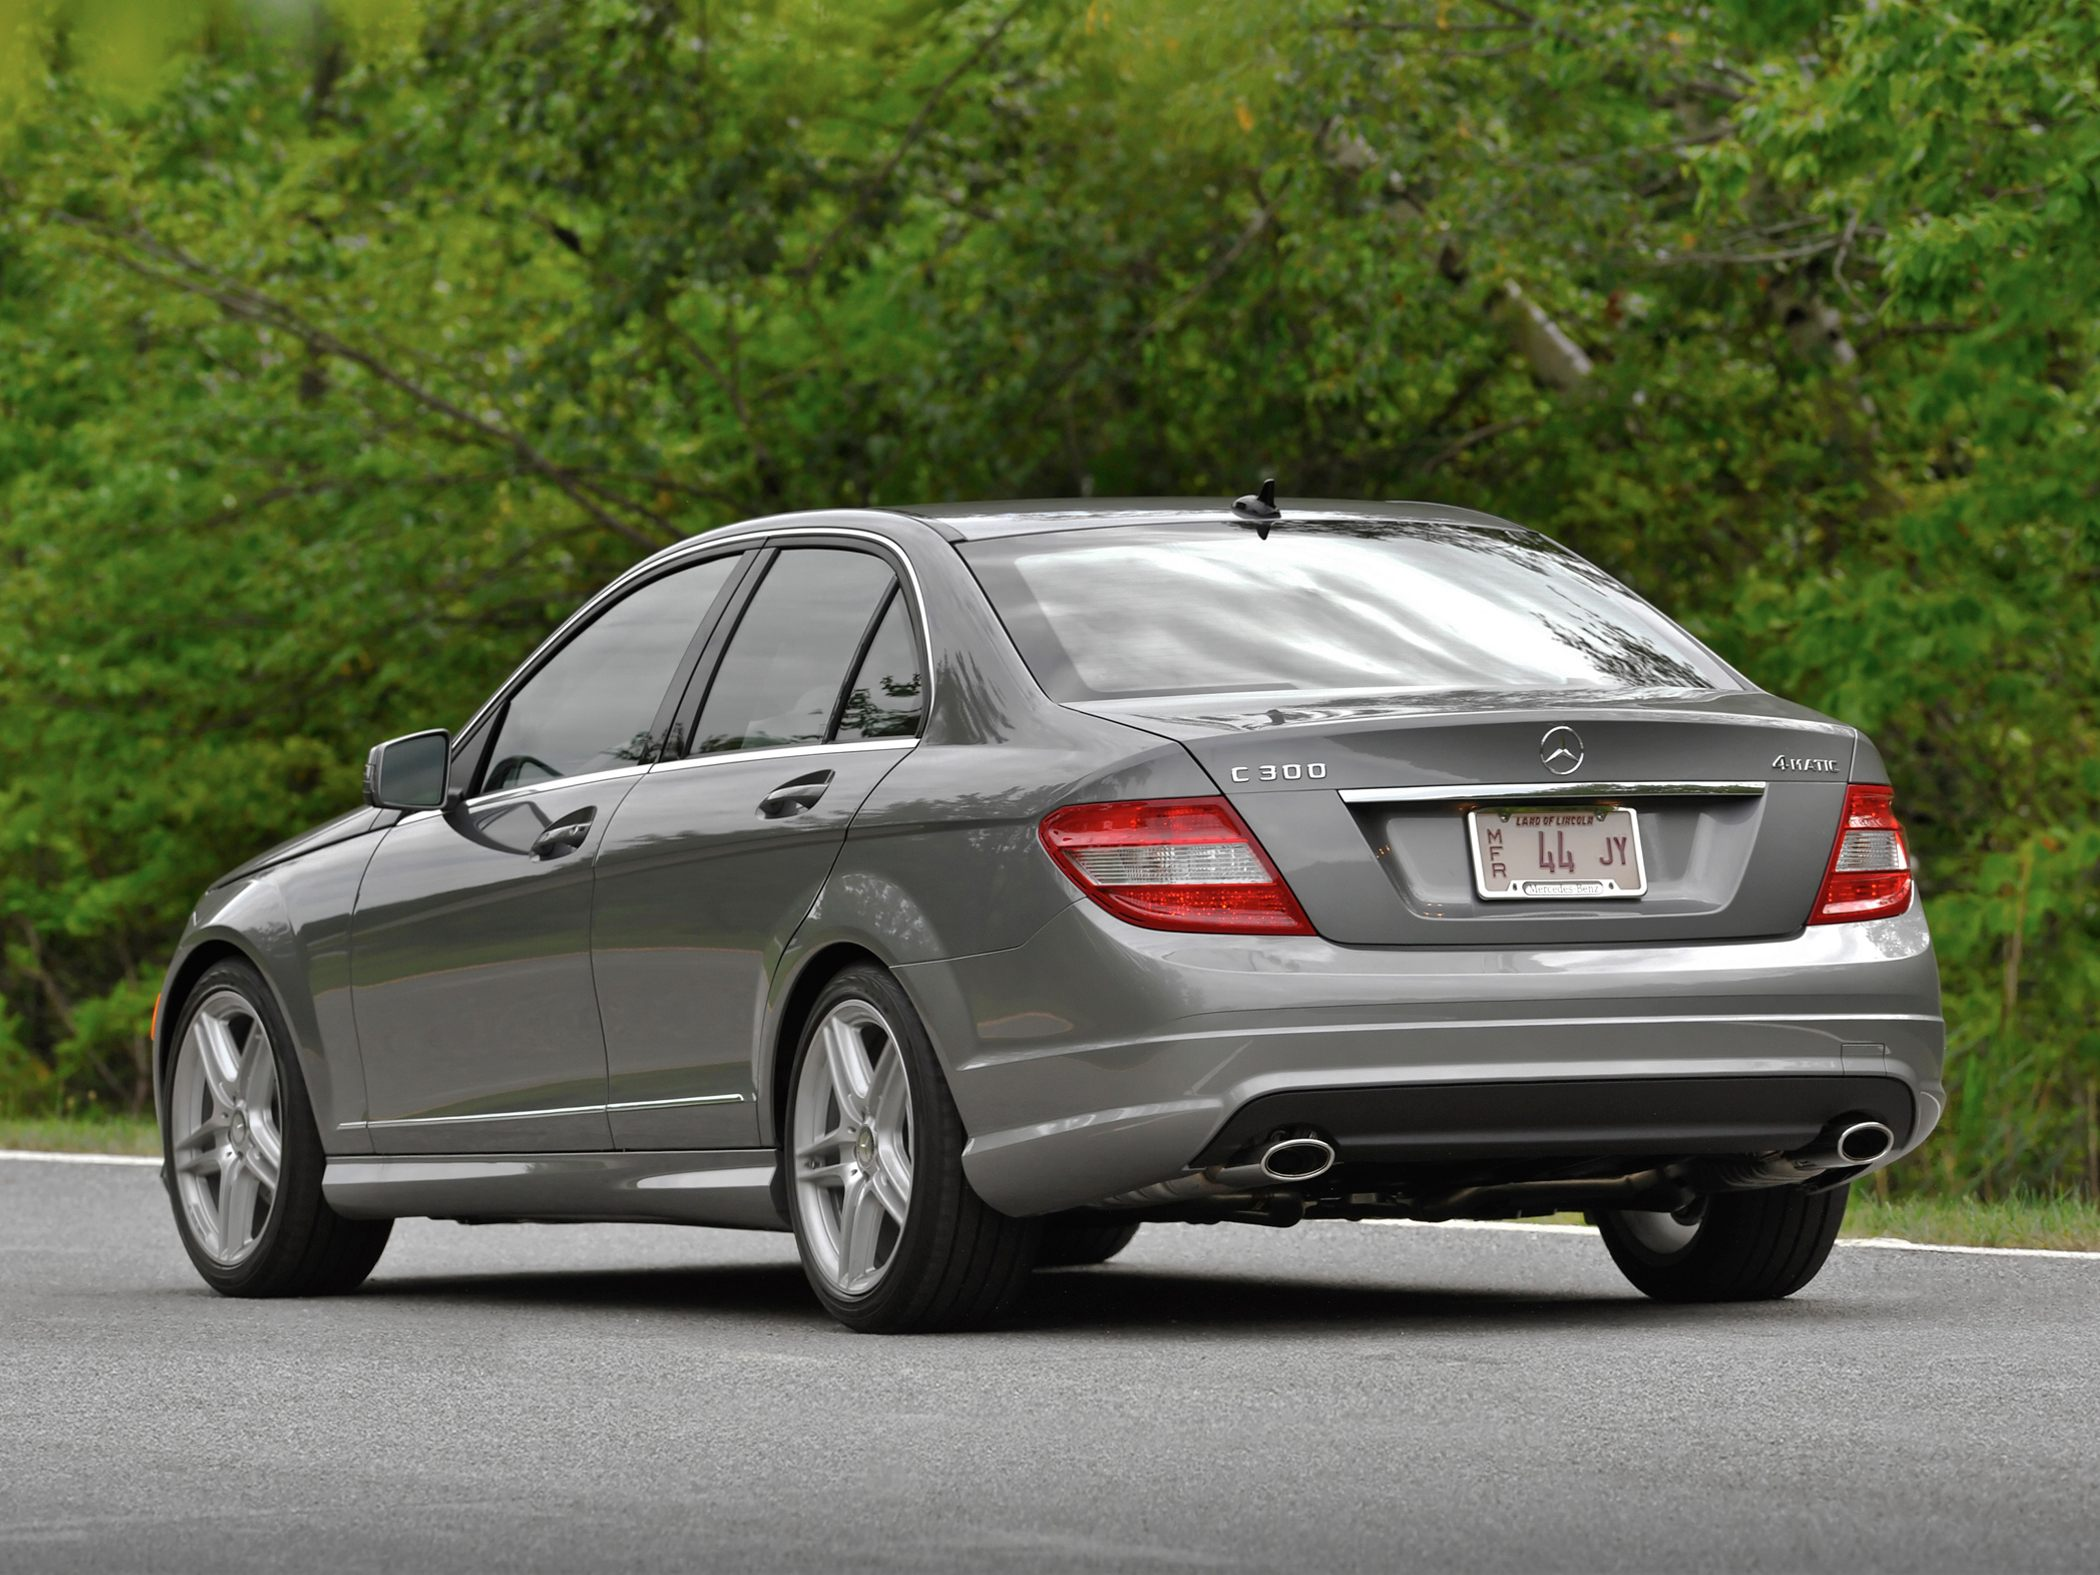 Mercedes Benz C 2011 Review Amazing Pictures And Images Look At The Car